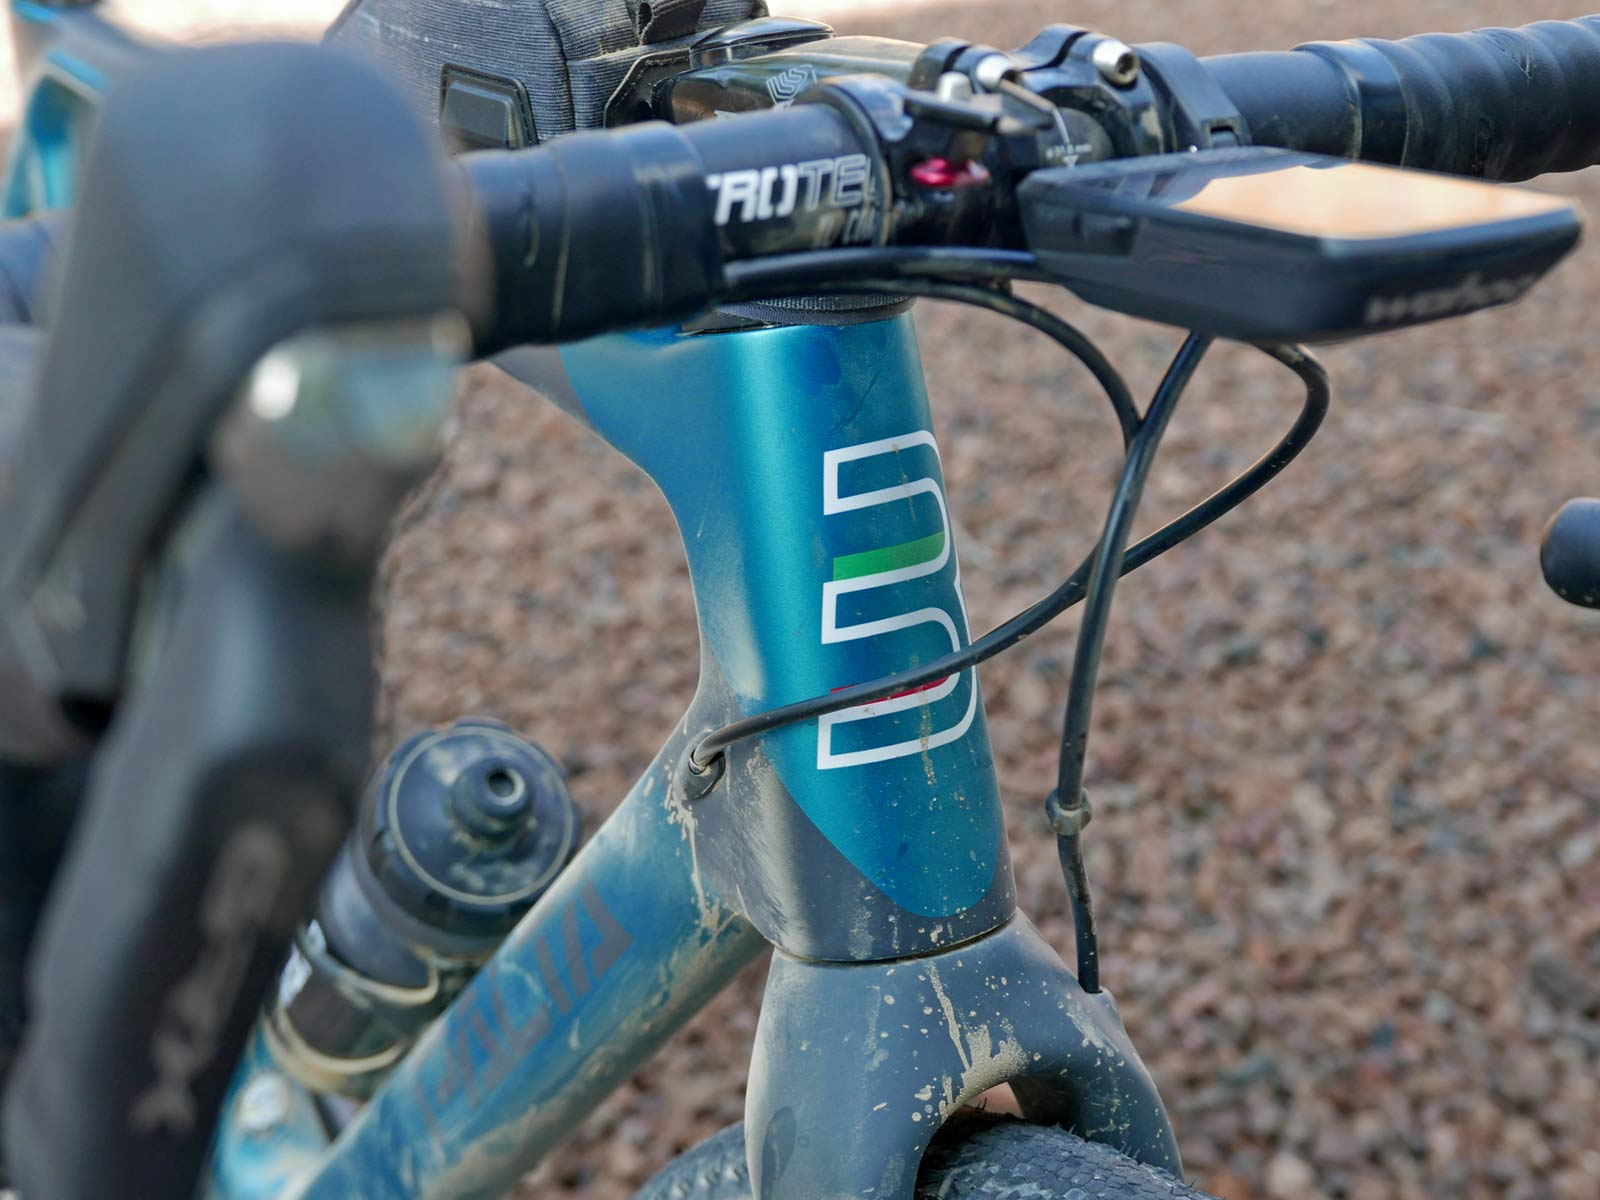 Basso Palta fast carbon gravel road bike - review: road-inspired fast, stiff, made-in-Italy, headtube